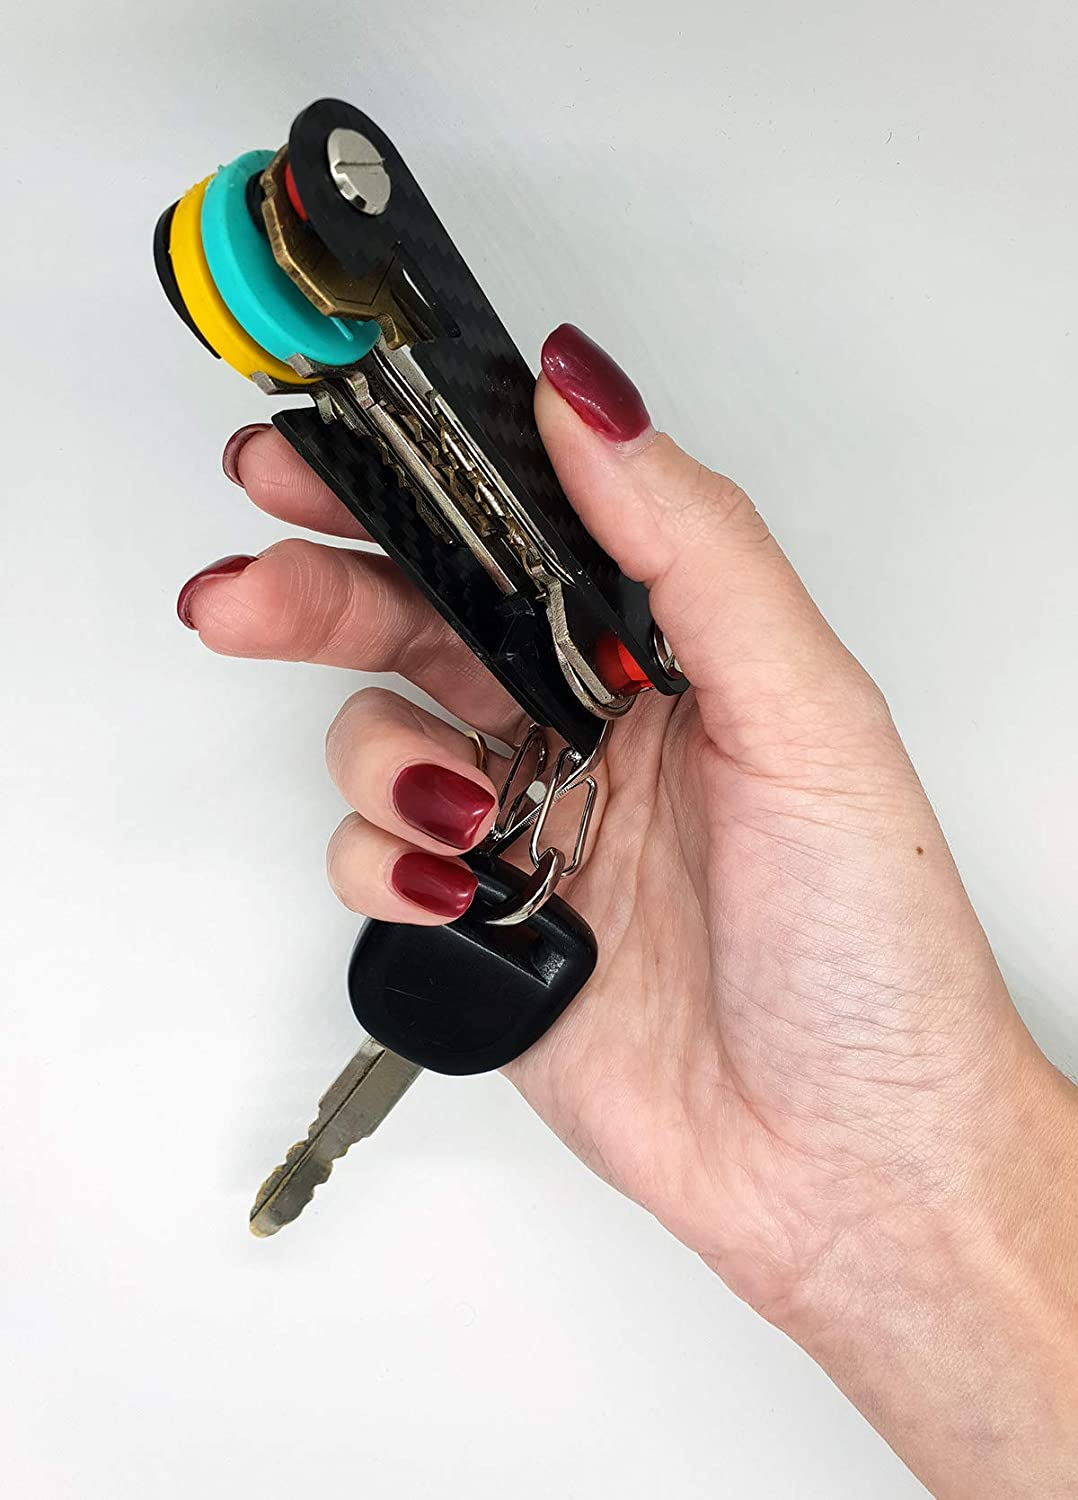 Smart Compact Key Holder Keychain Organizer-carbon fiber For Those Who like to stay Organized Fits all type of keys Up To 18 Tools Comes With Bottle Opener And Carabiner,Ring For Car Fobs